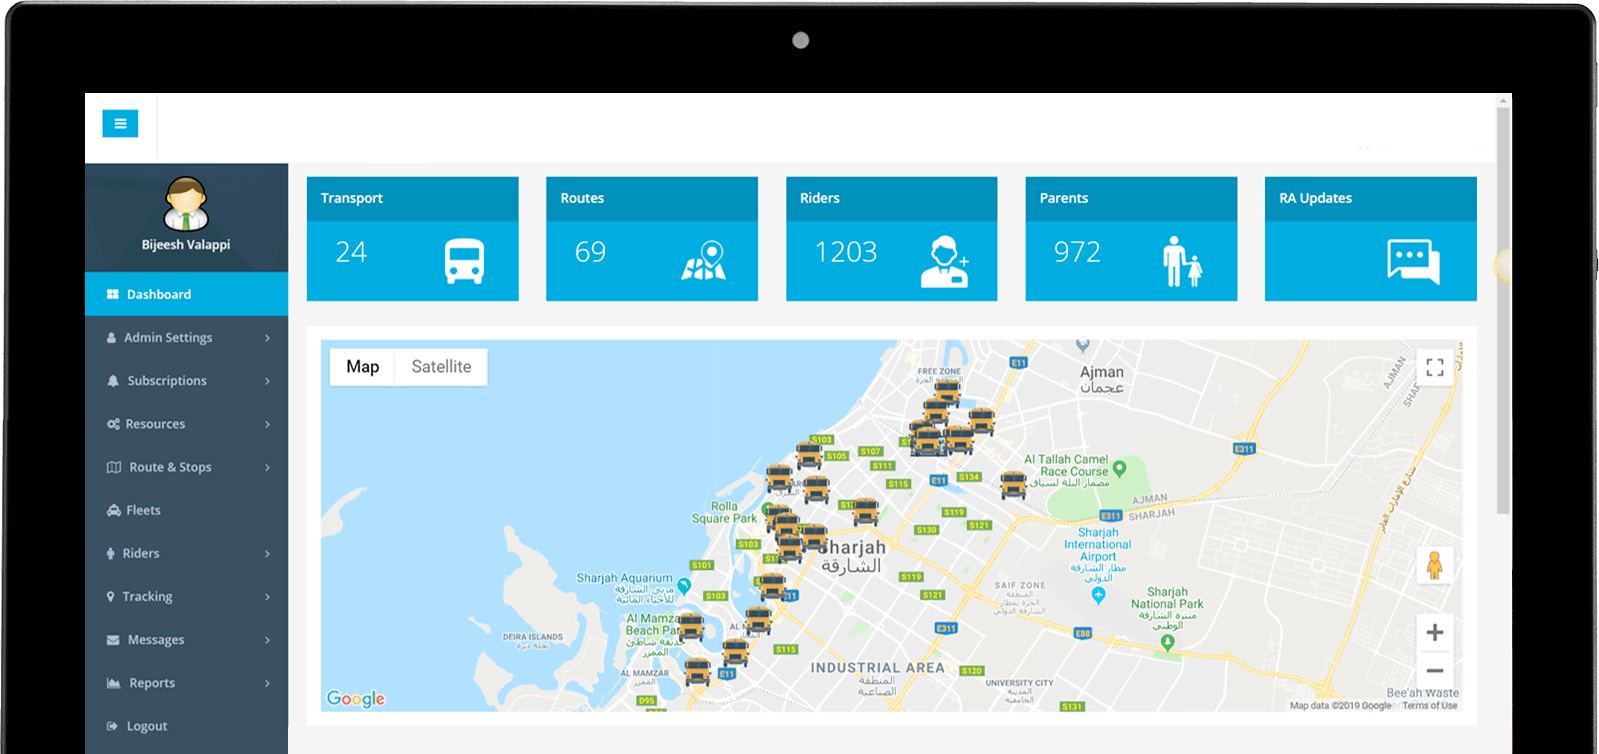 Passenger transportation tracking dashboard by location solutions